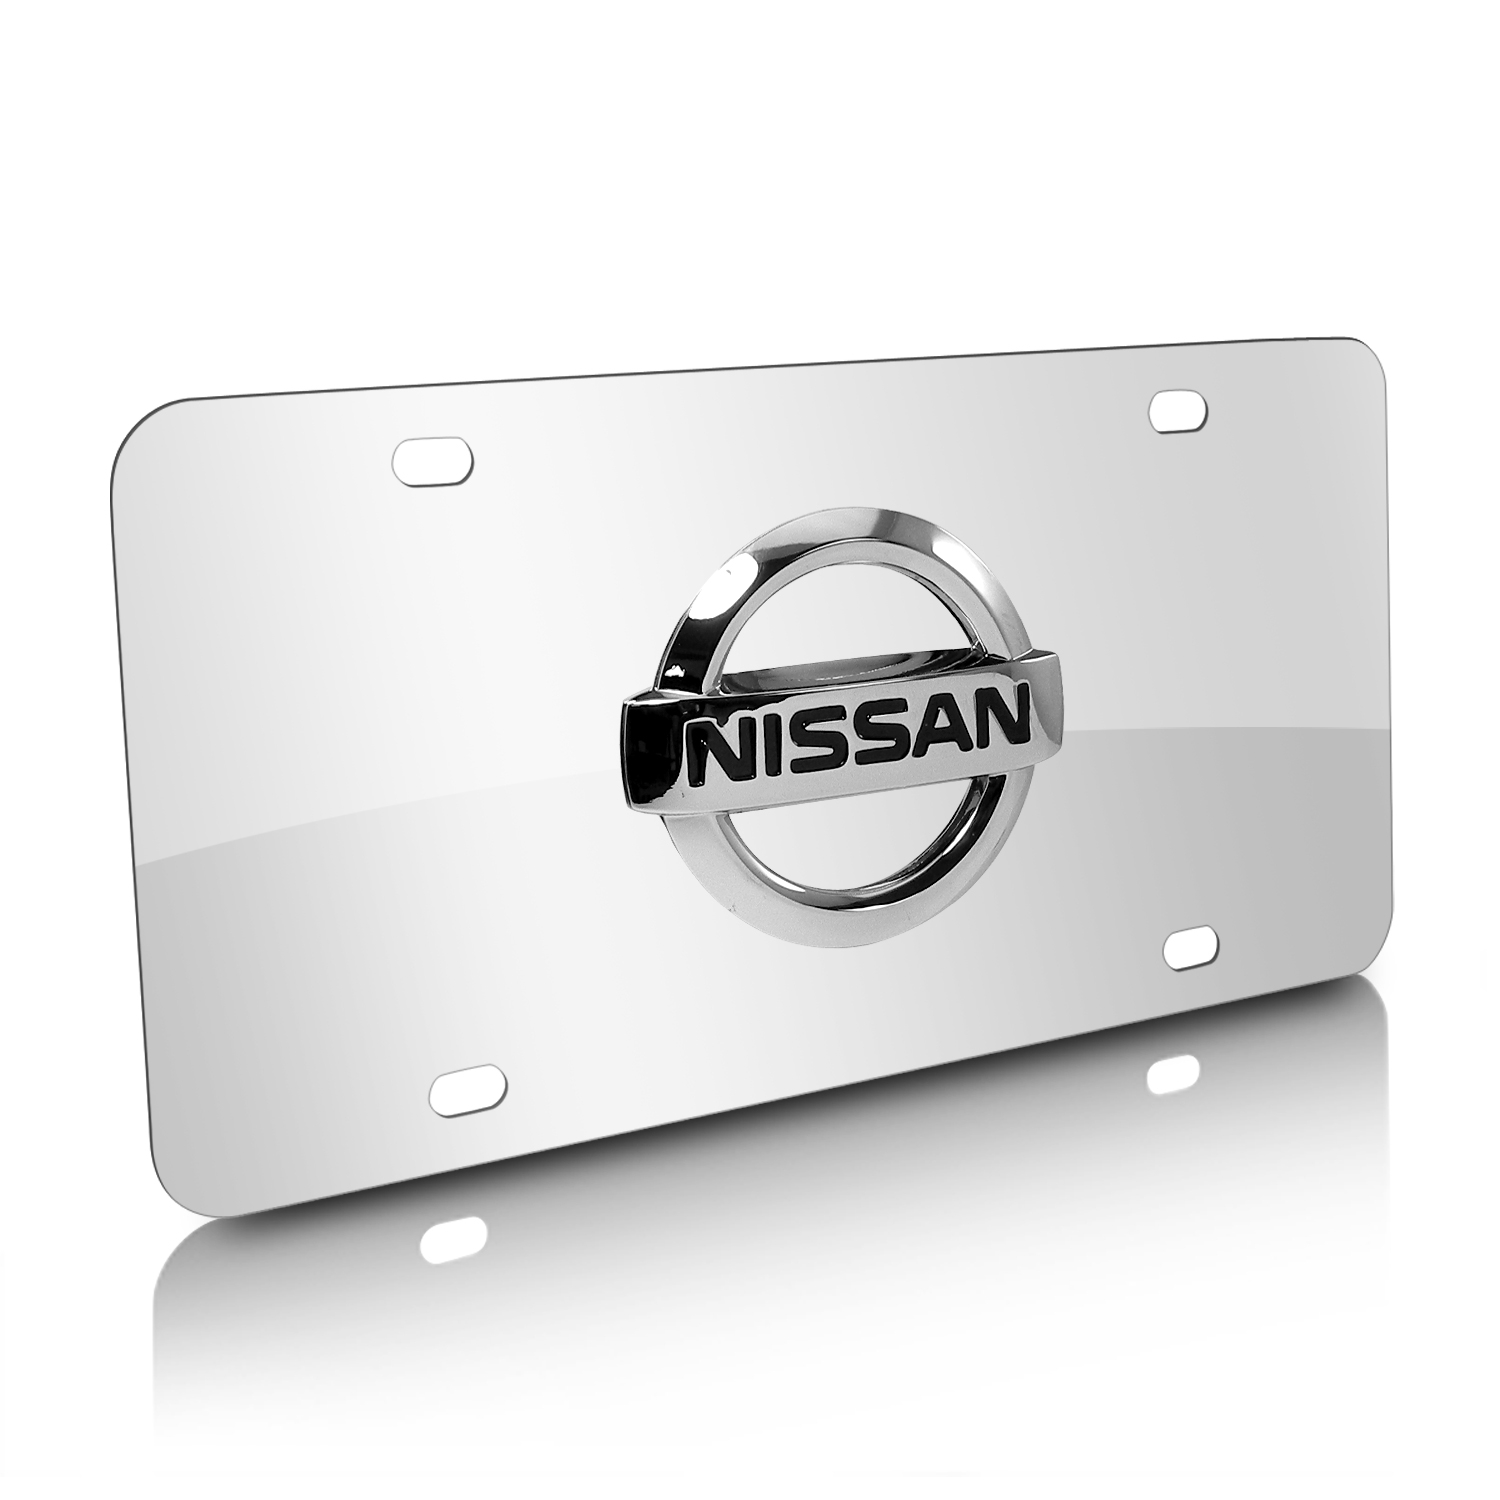 Nissan 3D Logo Chrome Stainless Steel License Plate